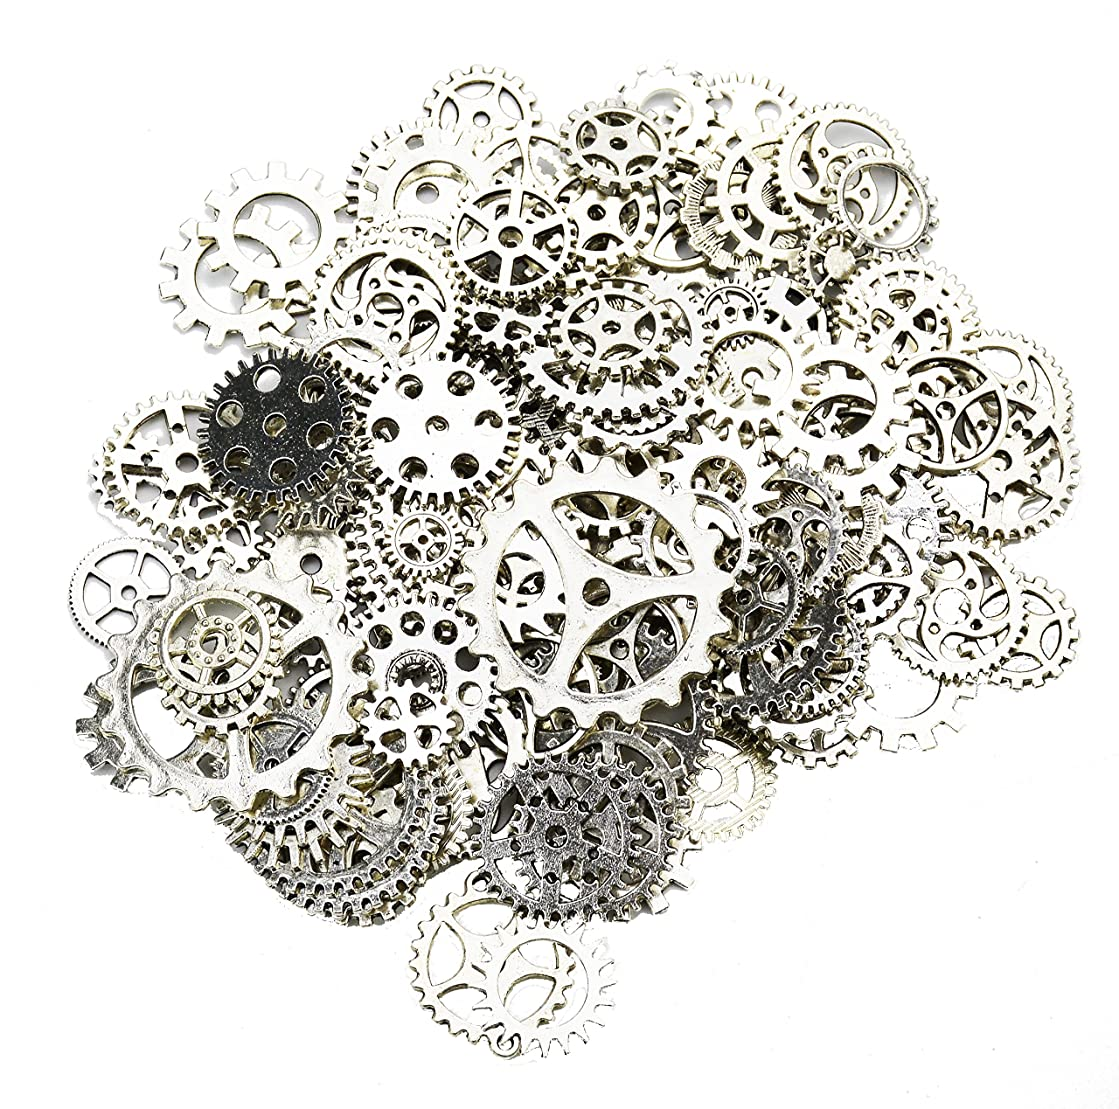 Aokbean 150 Gram Assorted Vintage Silver Metal Steampunk Jewelry Making Charms Cog Watch Wheel (Antique Silver)